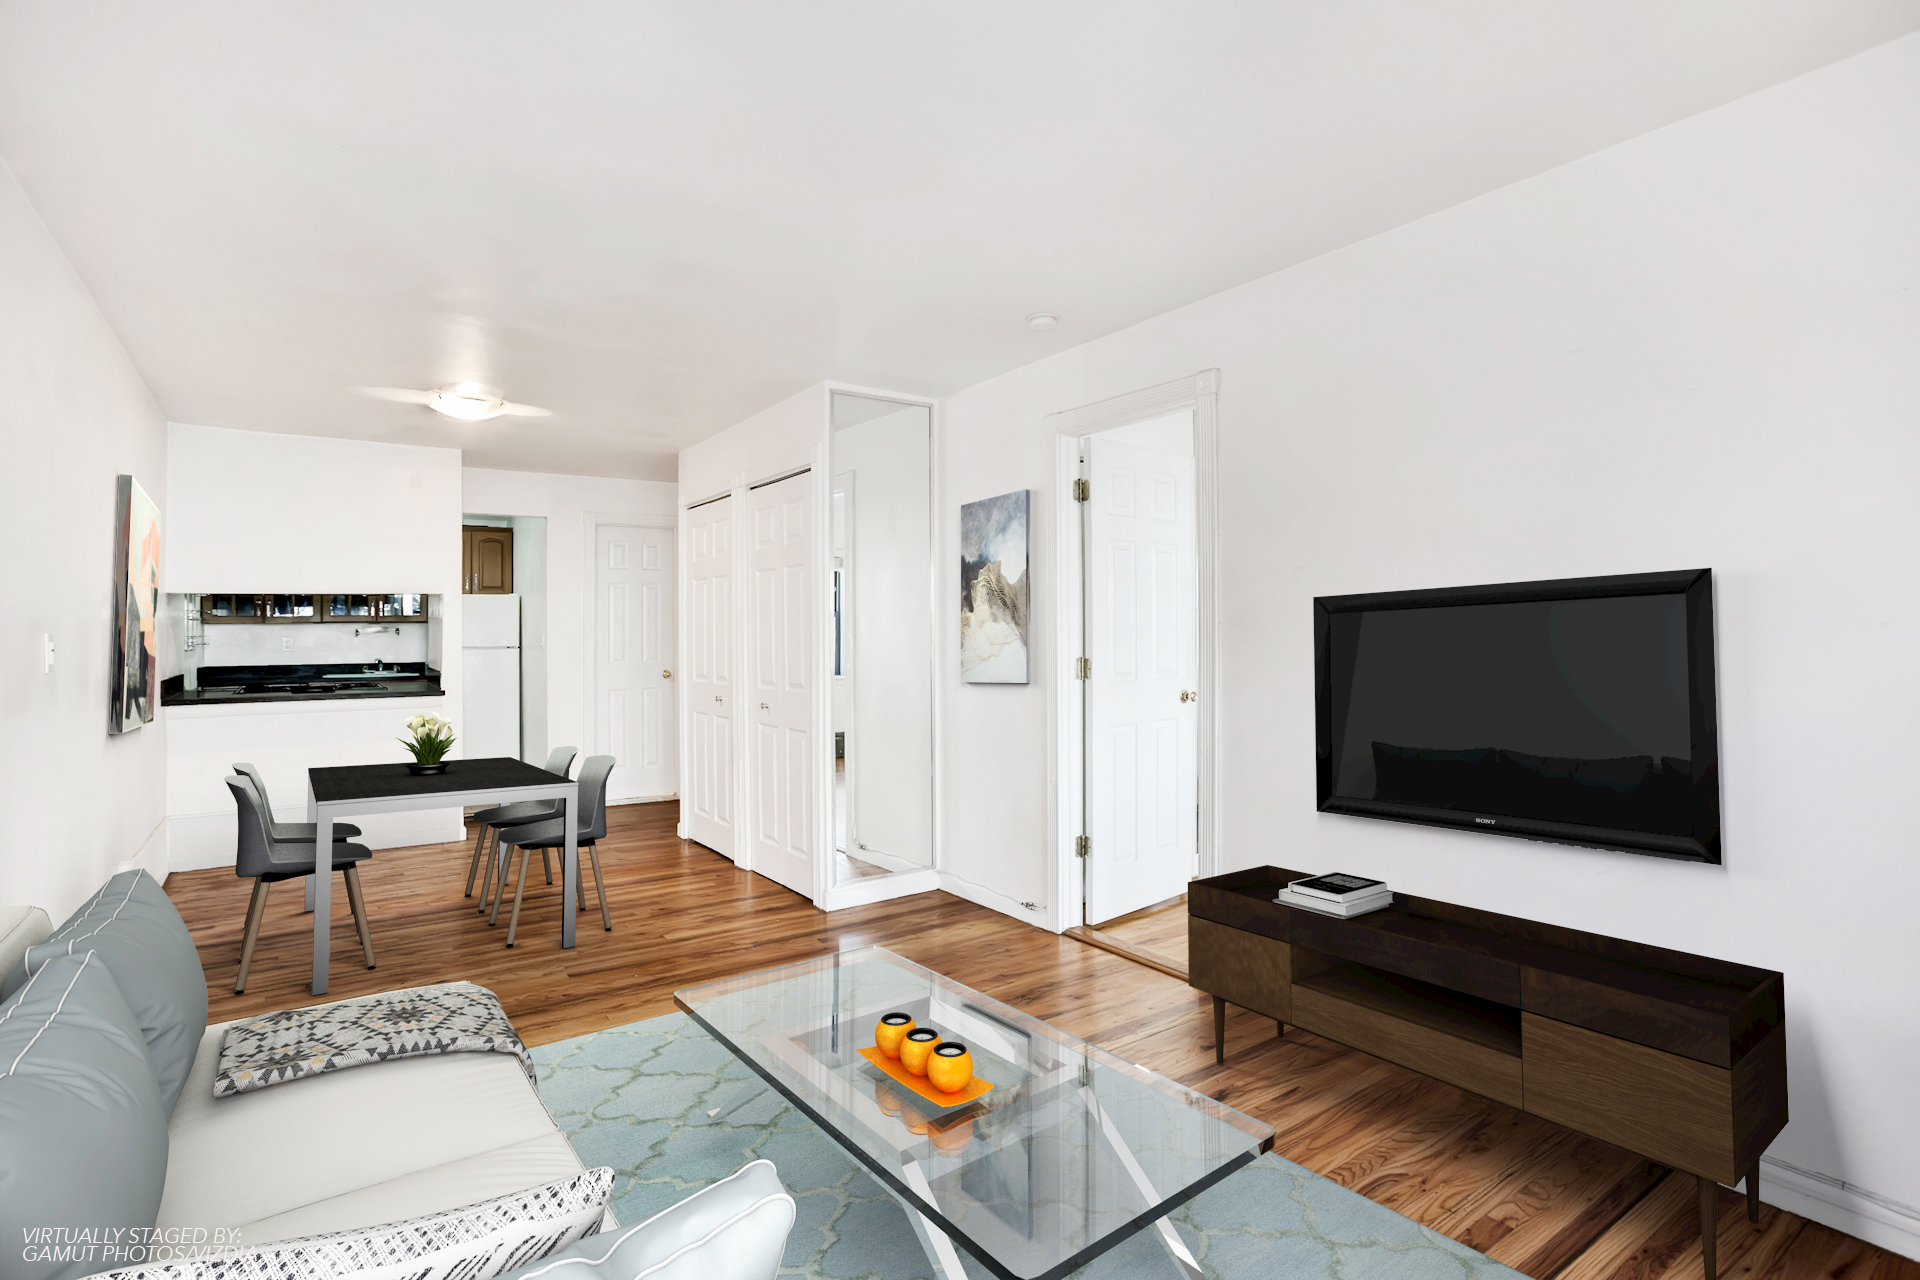 424 West 49th Street, #3A - $850,000